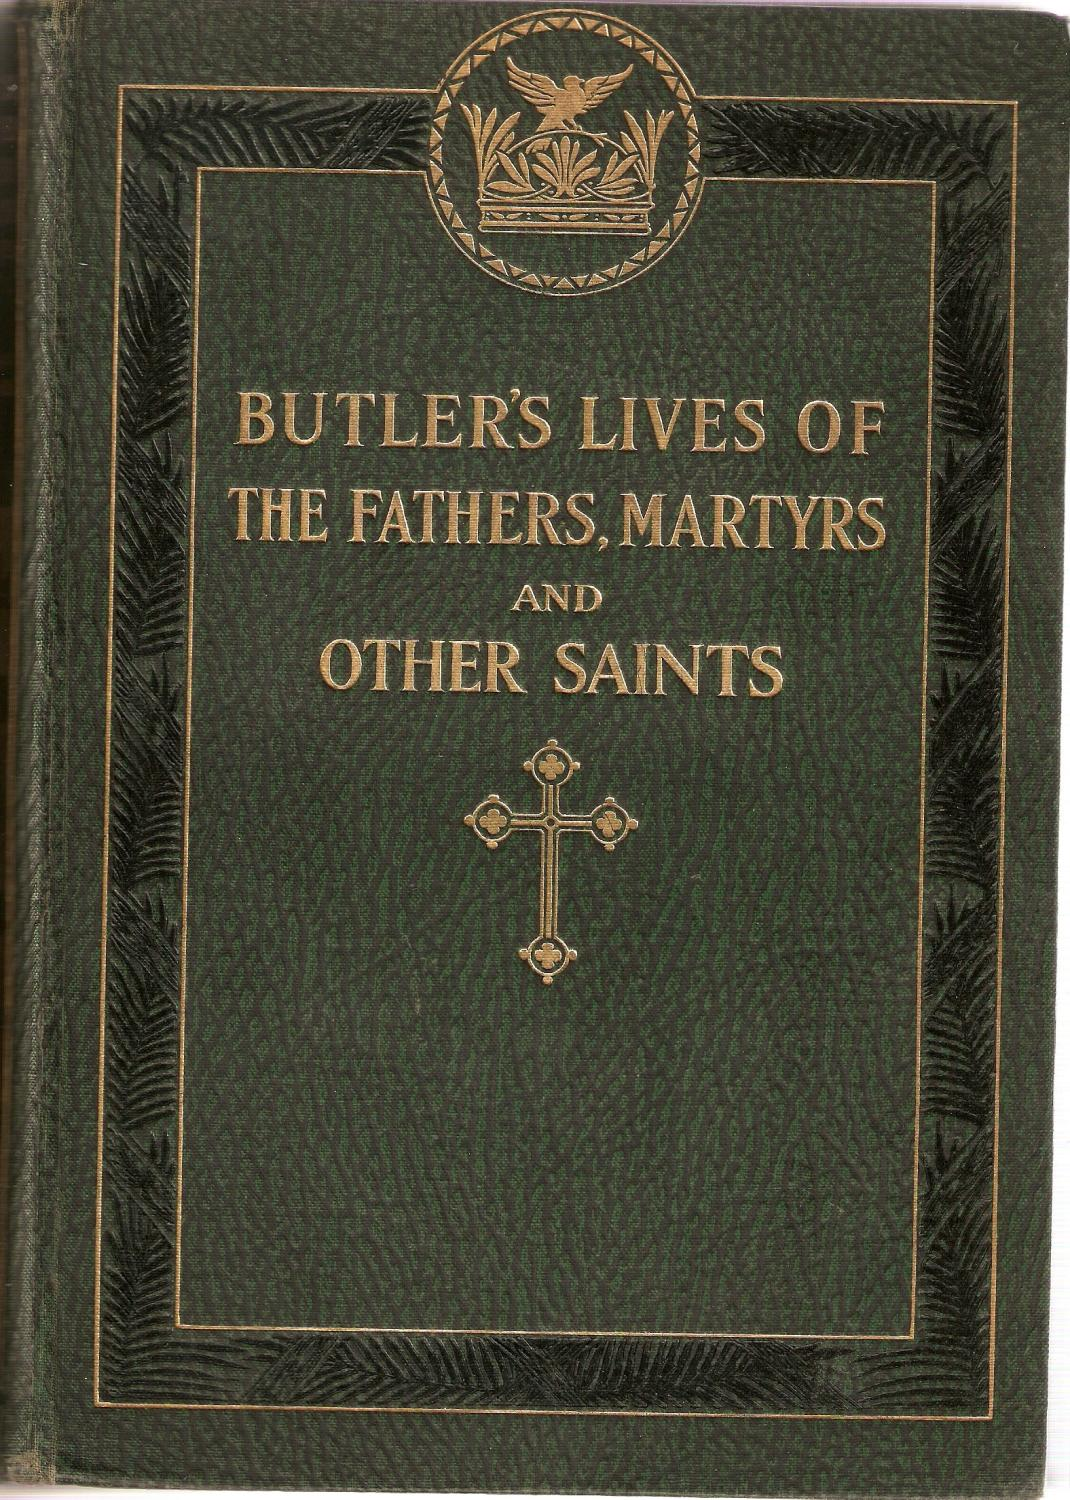 BUTLERS LIVES OF THE SAINTS EPUB DOWNLOAD